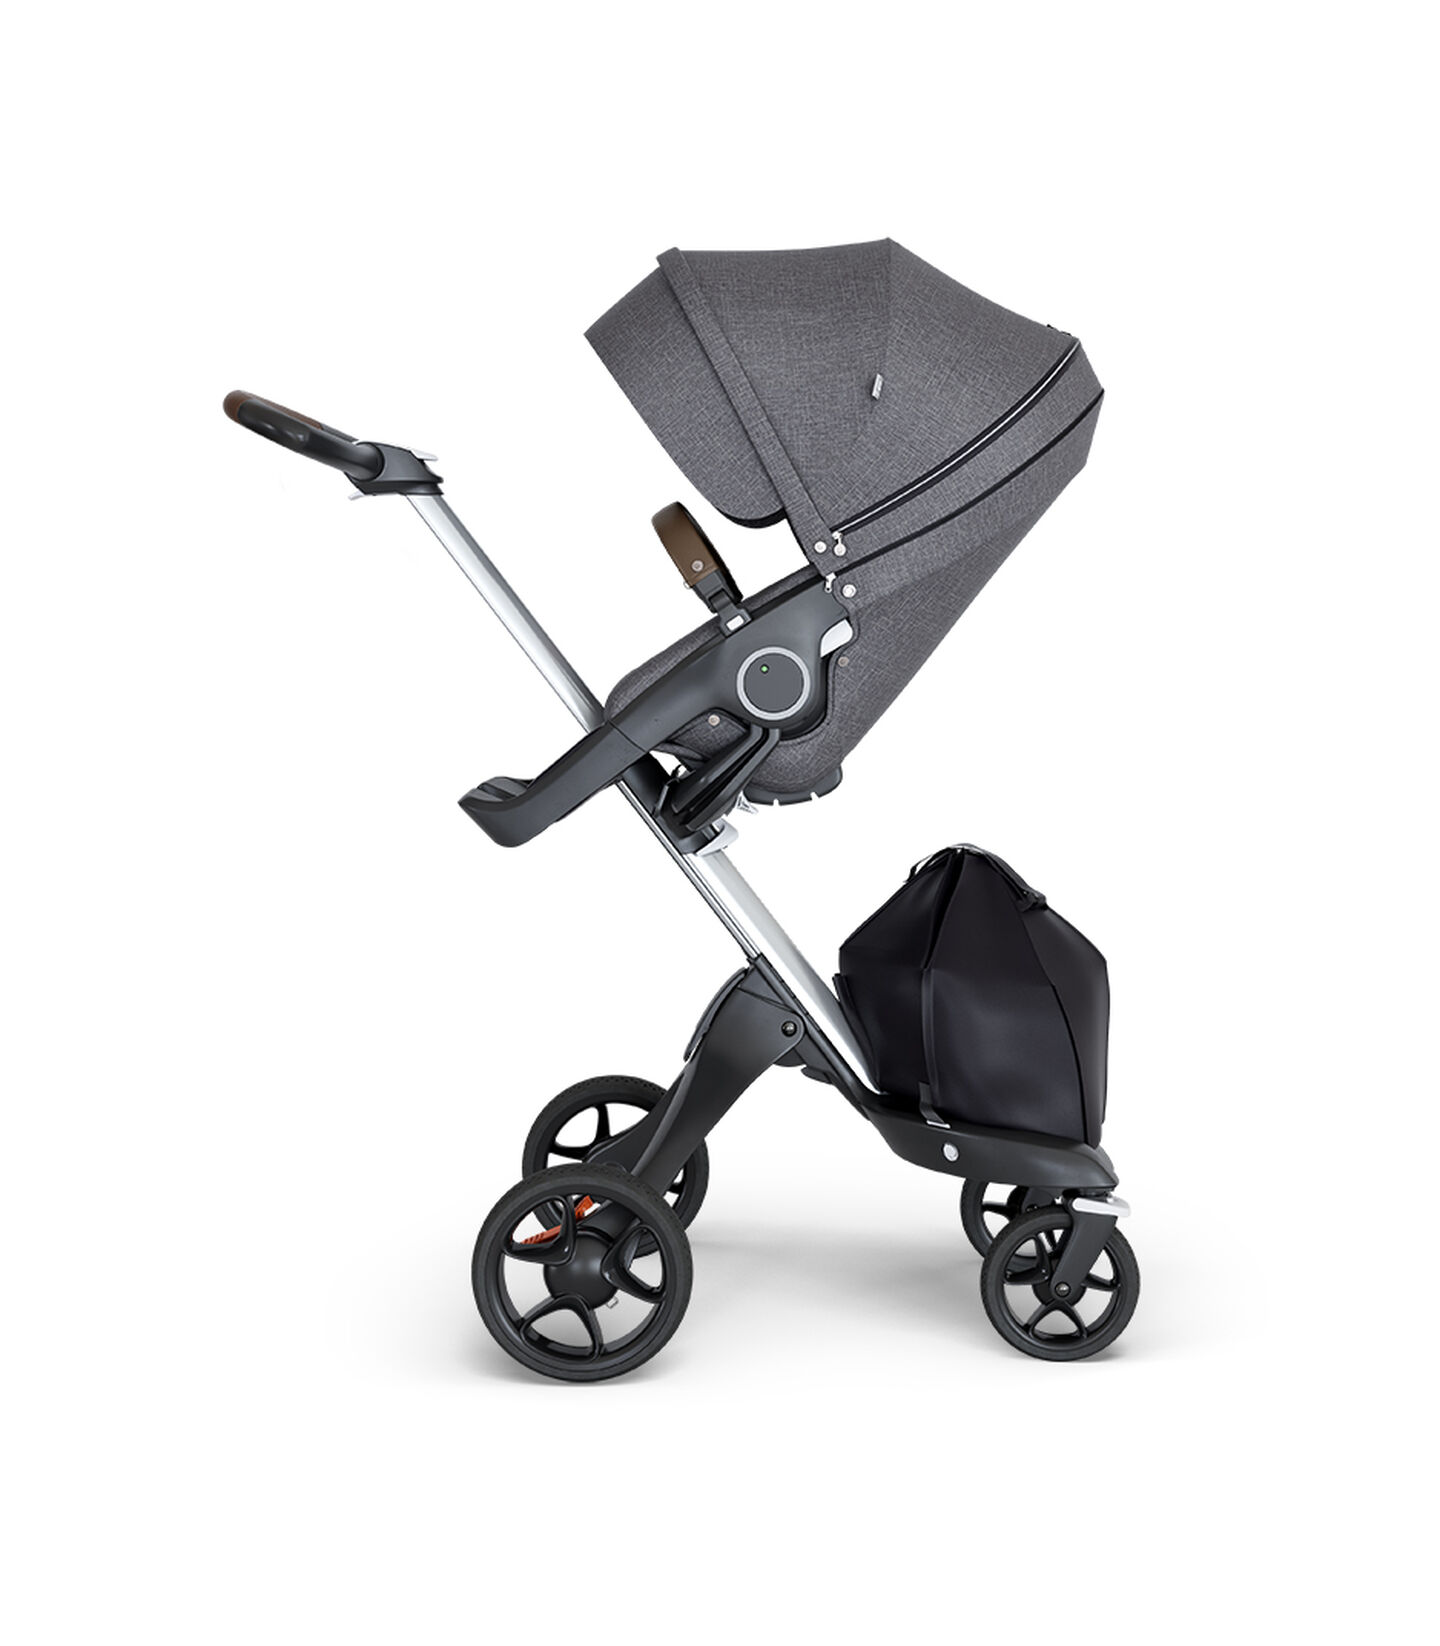 Stokke® Xplory® 6 Silver Chassis - Brown Handle Black Melange, Negro Melange, mainview view 2